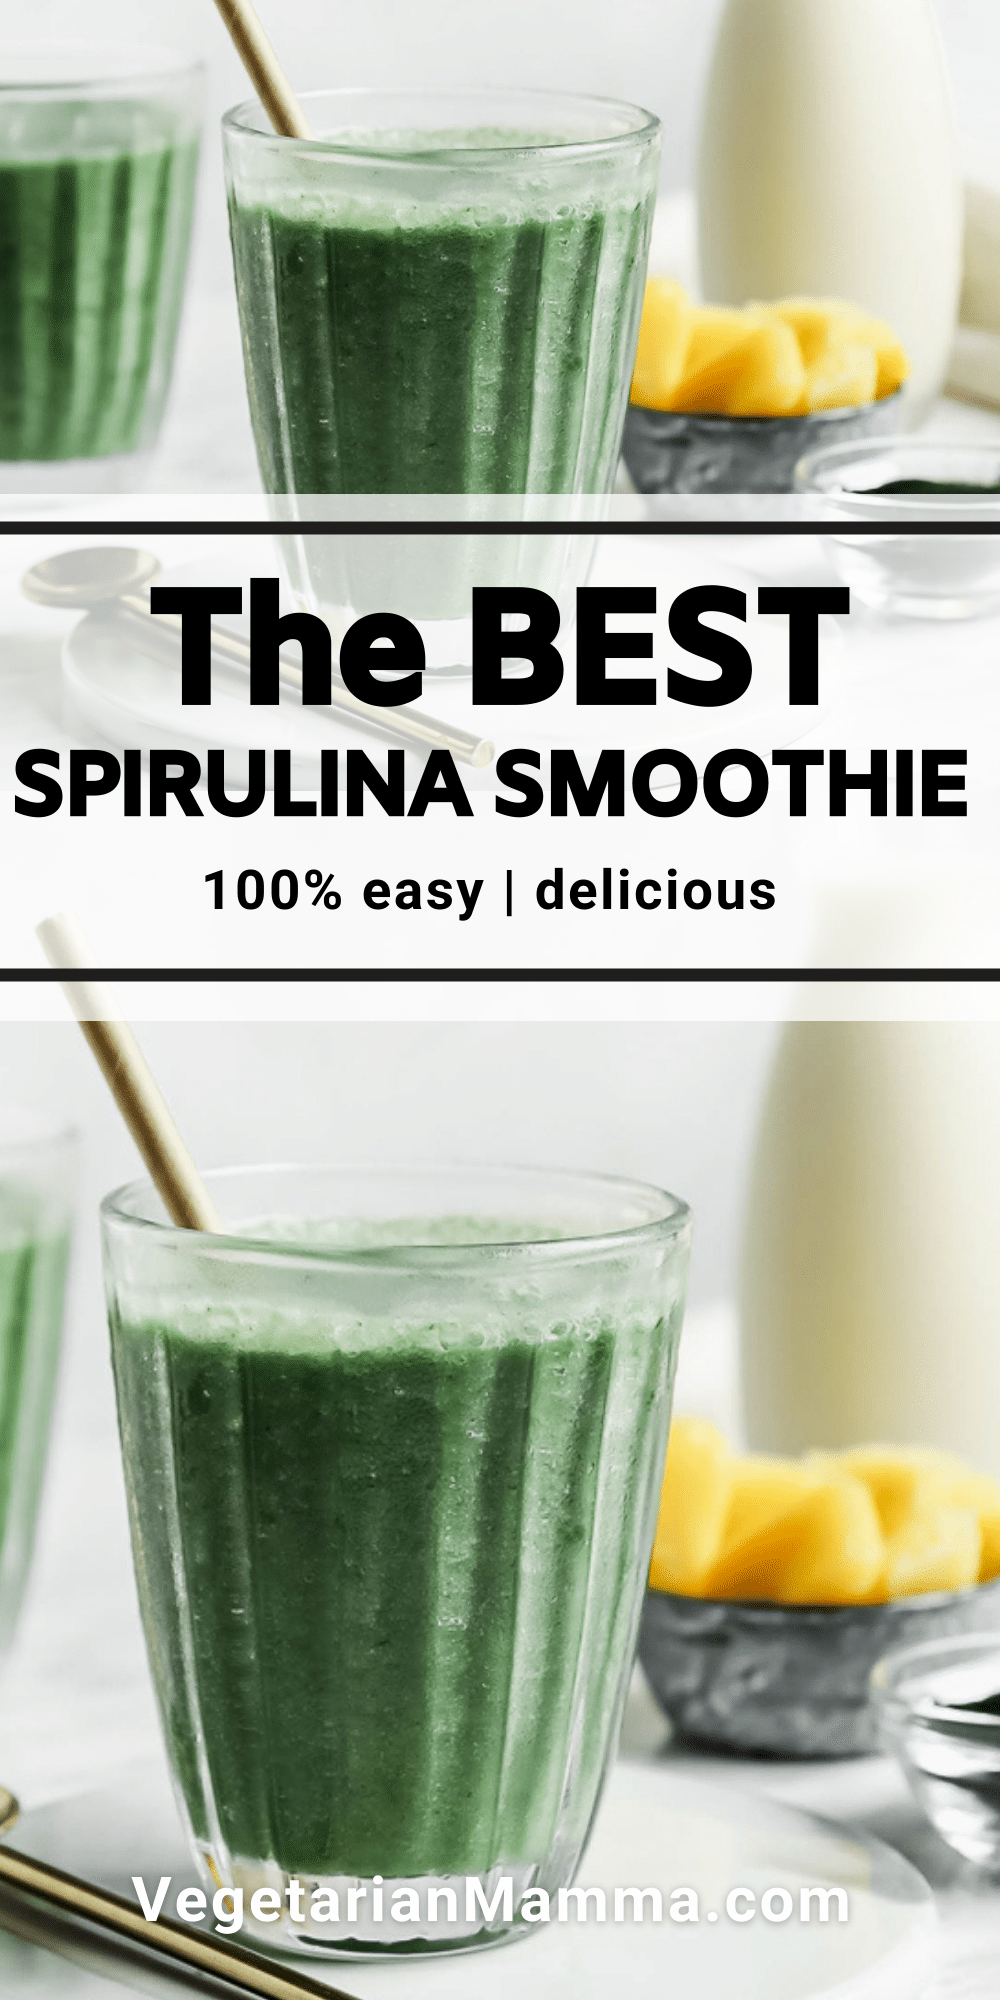 This Spirulina Smoothie is a great choice for a quick and easy breakfast! It is loaded with nutrients and is also vegan and gluten-free!